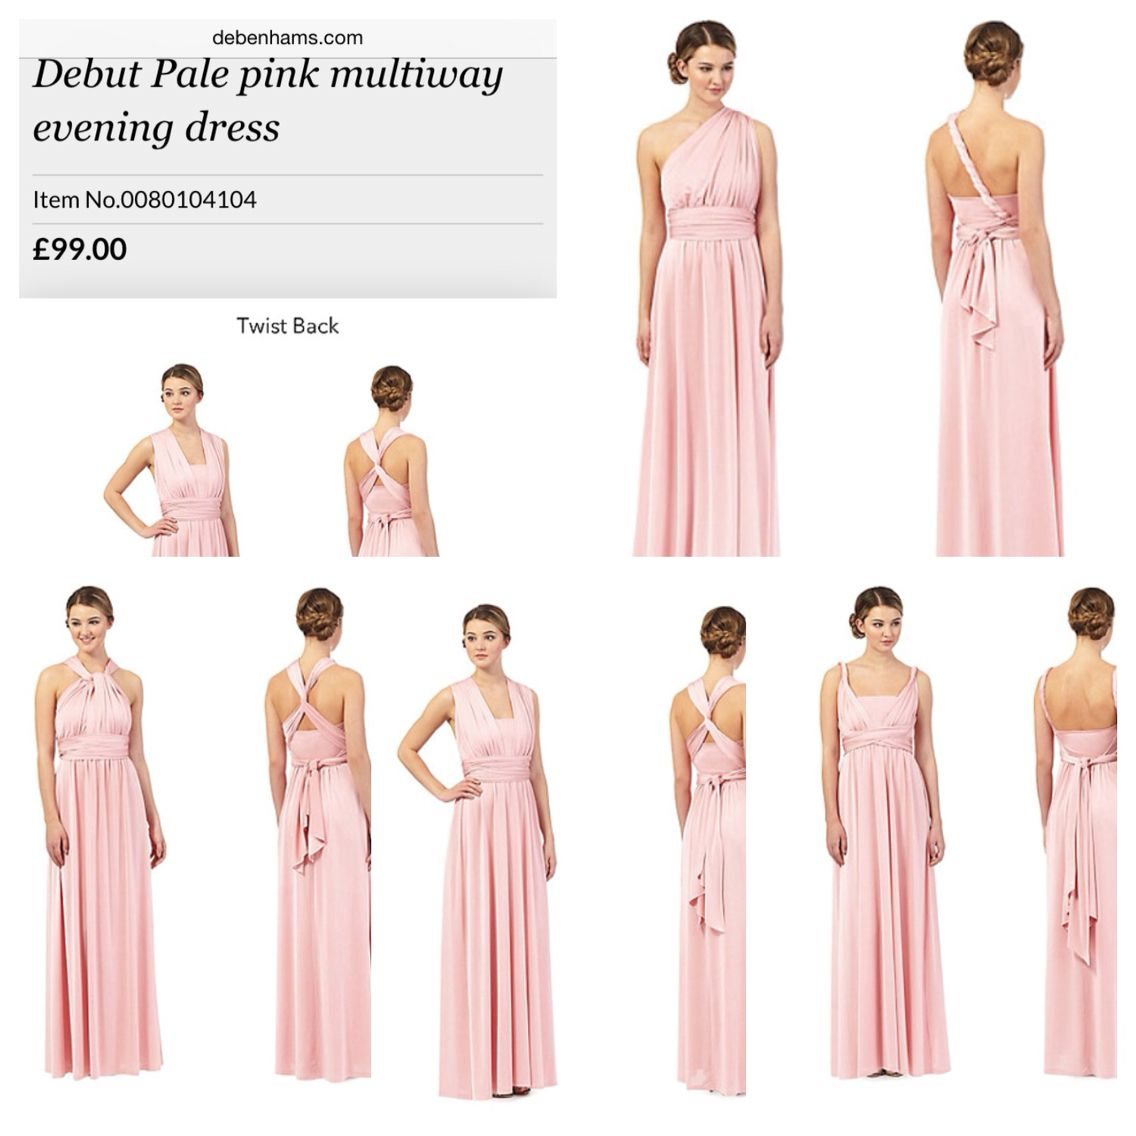 Debut pale pink multi way bridesmaid dress debenhams outfit debut pale pink multi way bridesmaid dress debenhams ombrellifo Image collections